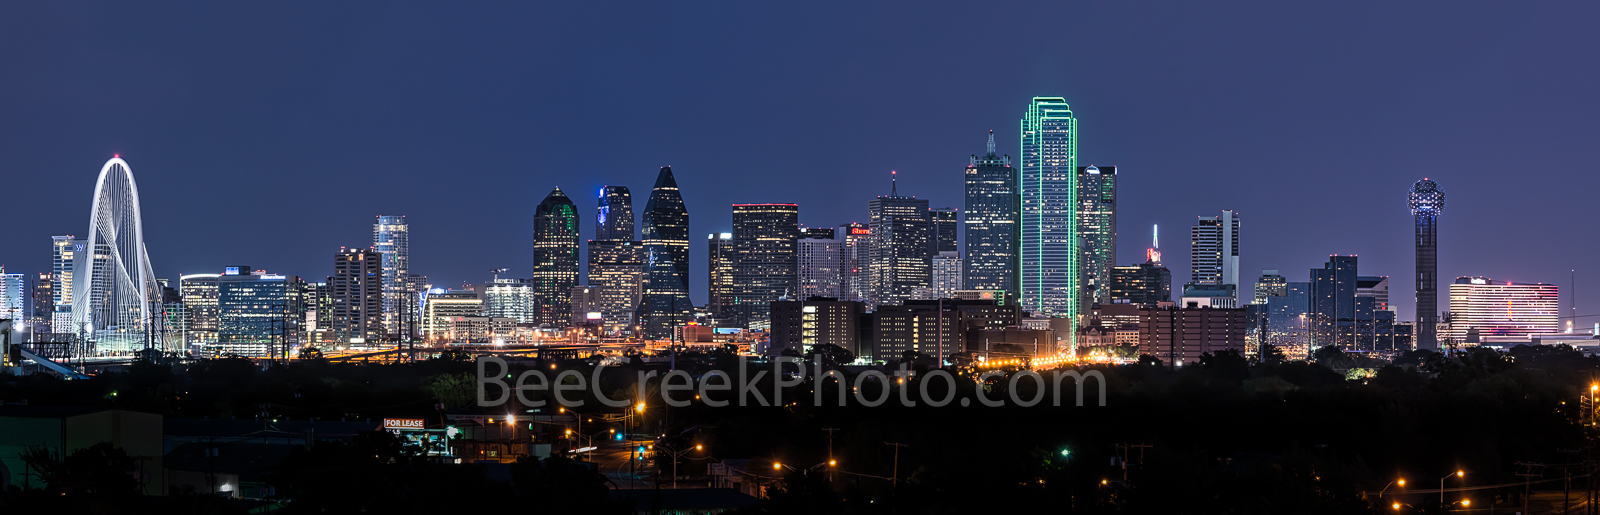 Dallas, skyline, Margaret Hunt Hill bridge, Omni, Bank of america, plaza,  Reunion Tower, Fountain Plaza, cityscape, cityscapes, iconic,  dark, downtown, high rise, images of dallas, night, panorama,